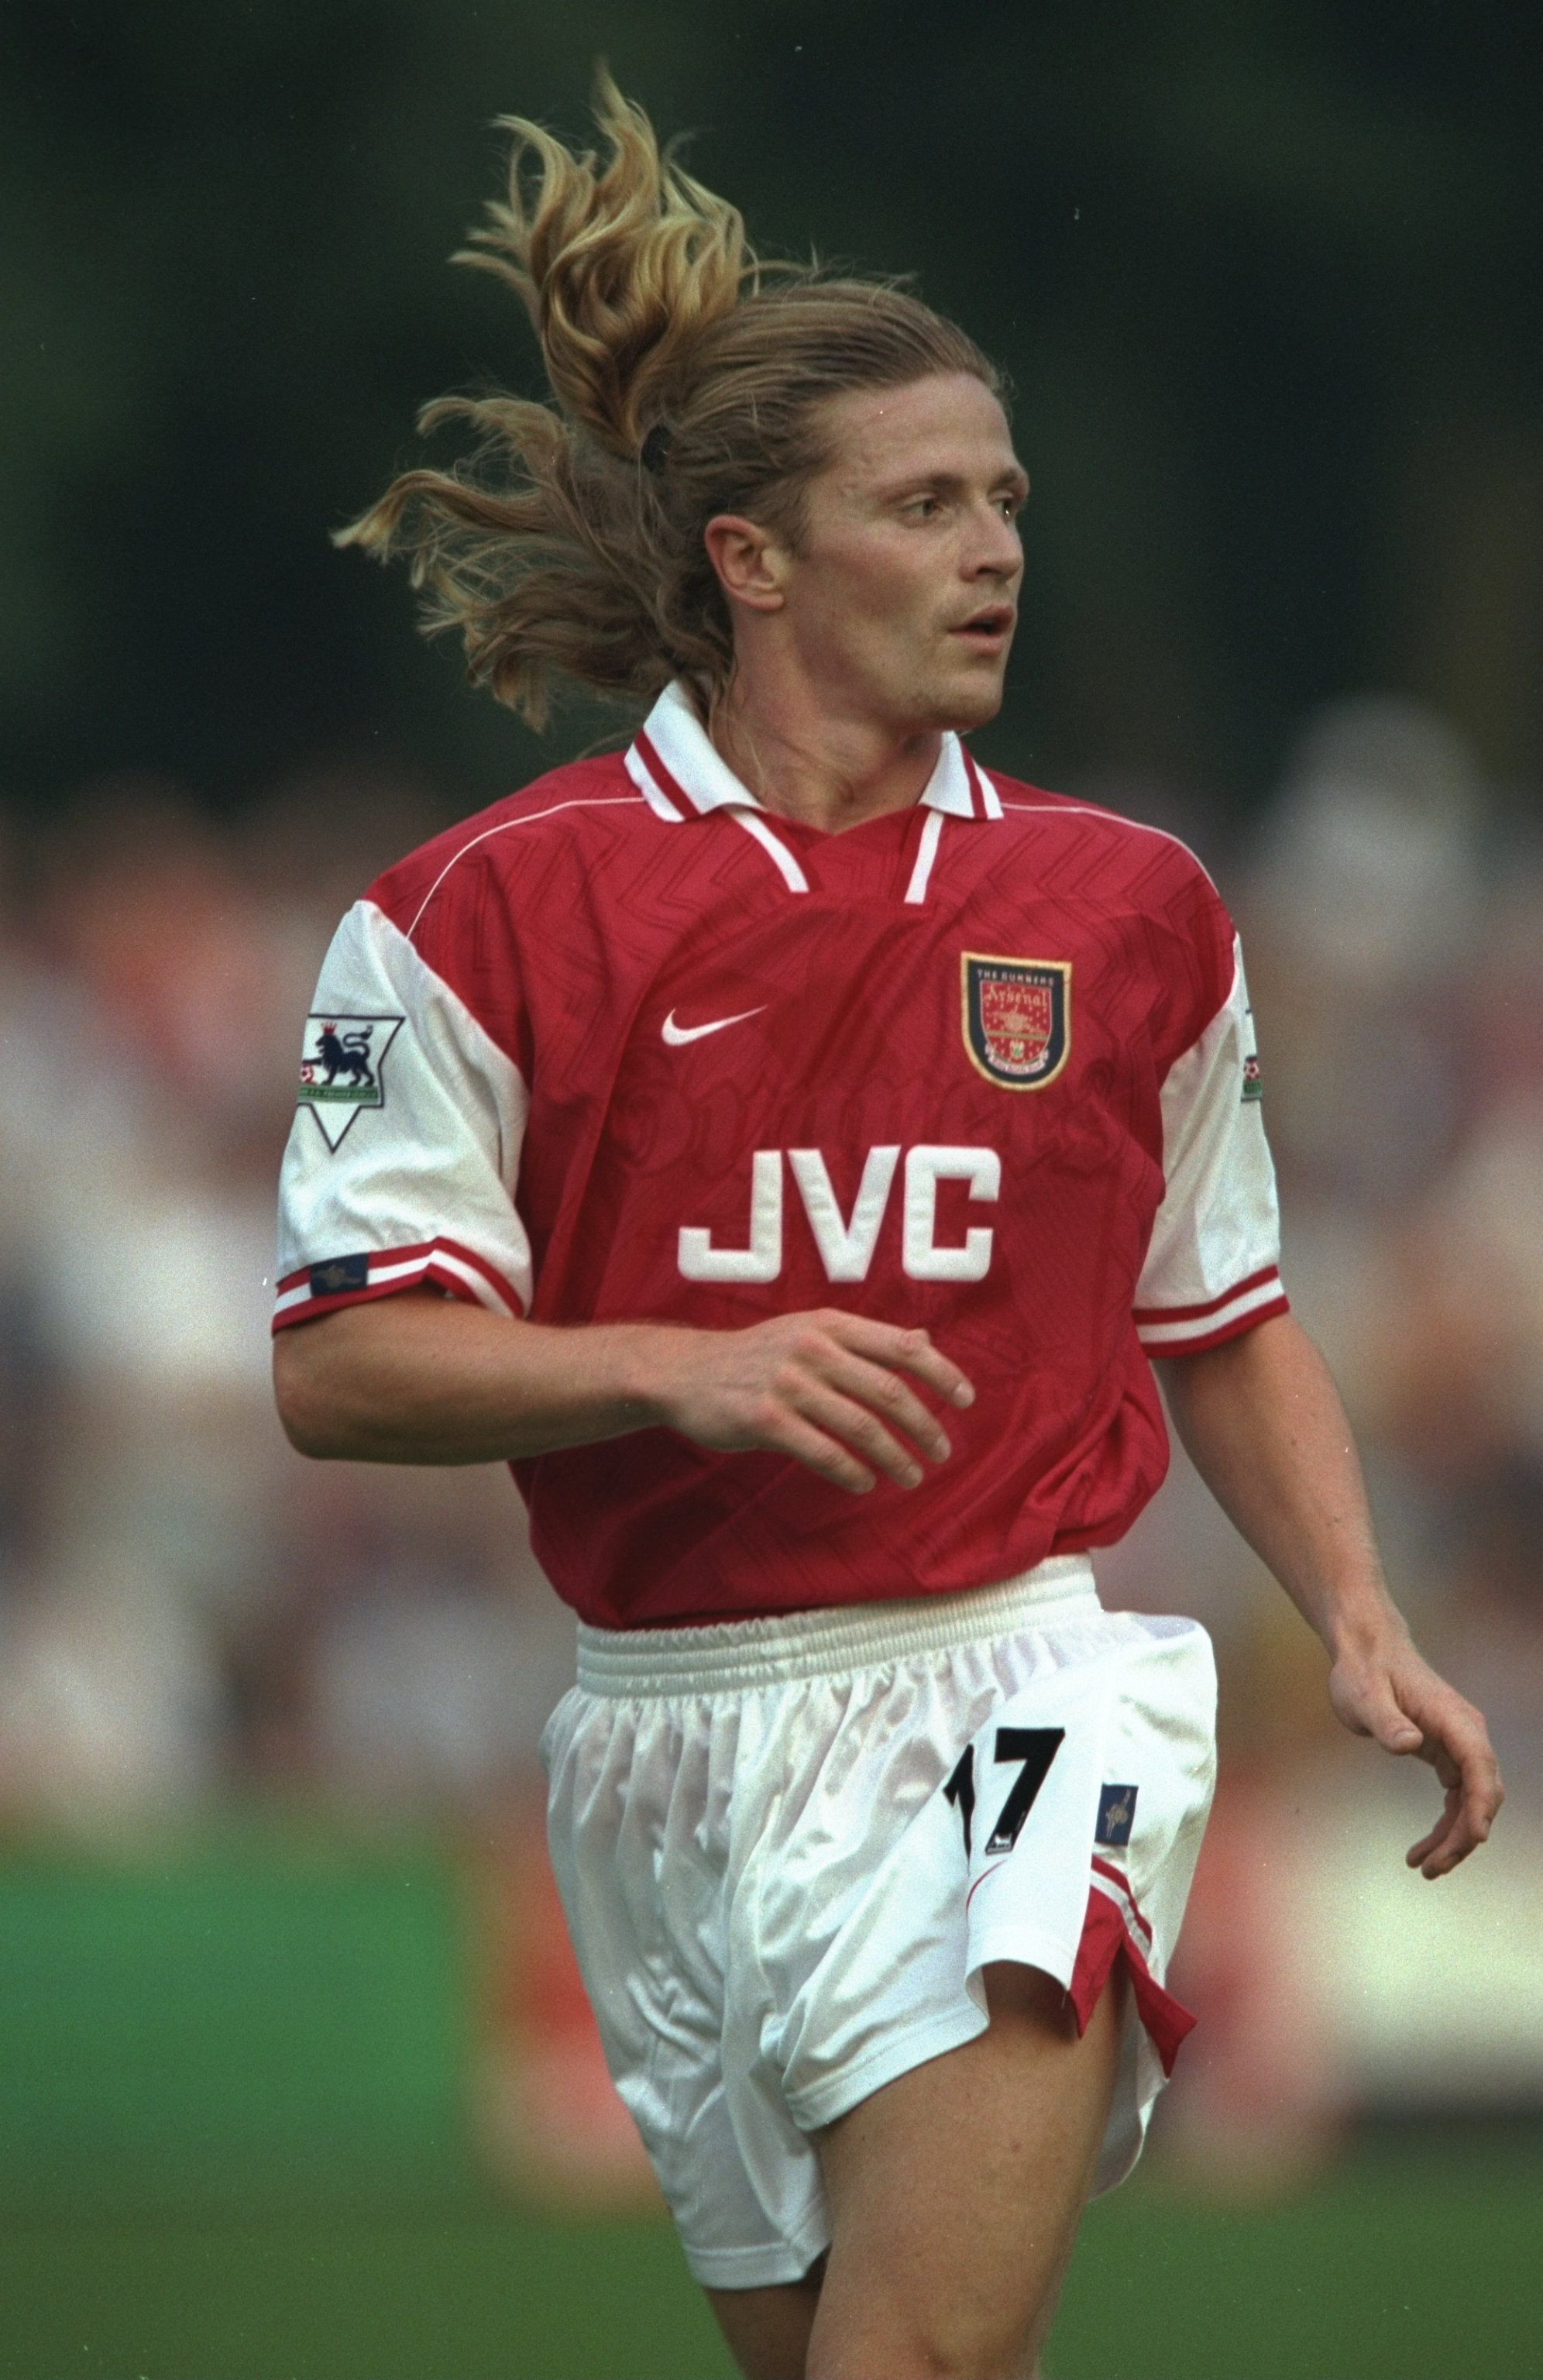 8 Jul 1997:  Emmanuel Petit of Arsenal in action during the pre-season friendly against St. Albans in St. Albans, England.  Mandatory Credit: Ben Radford /Allsport